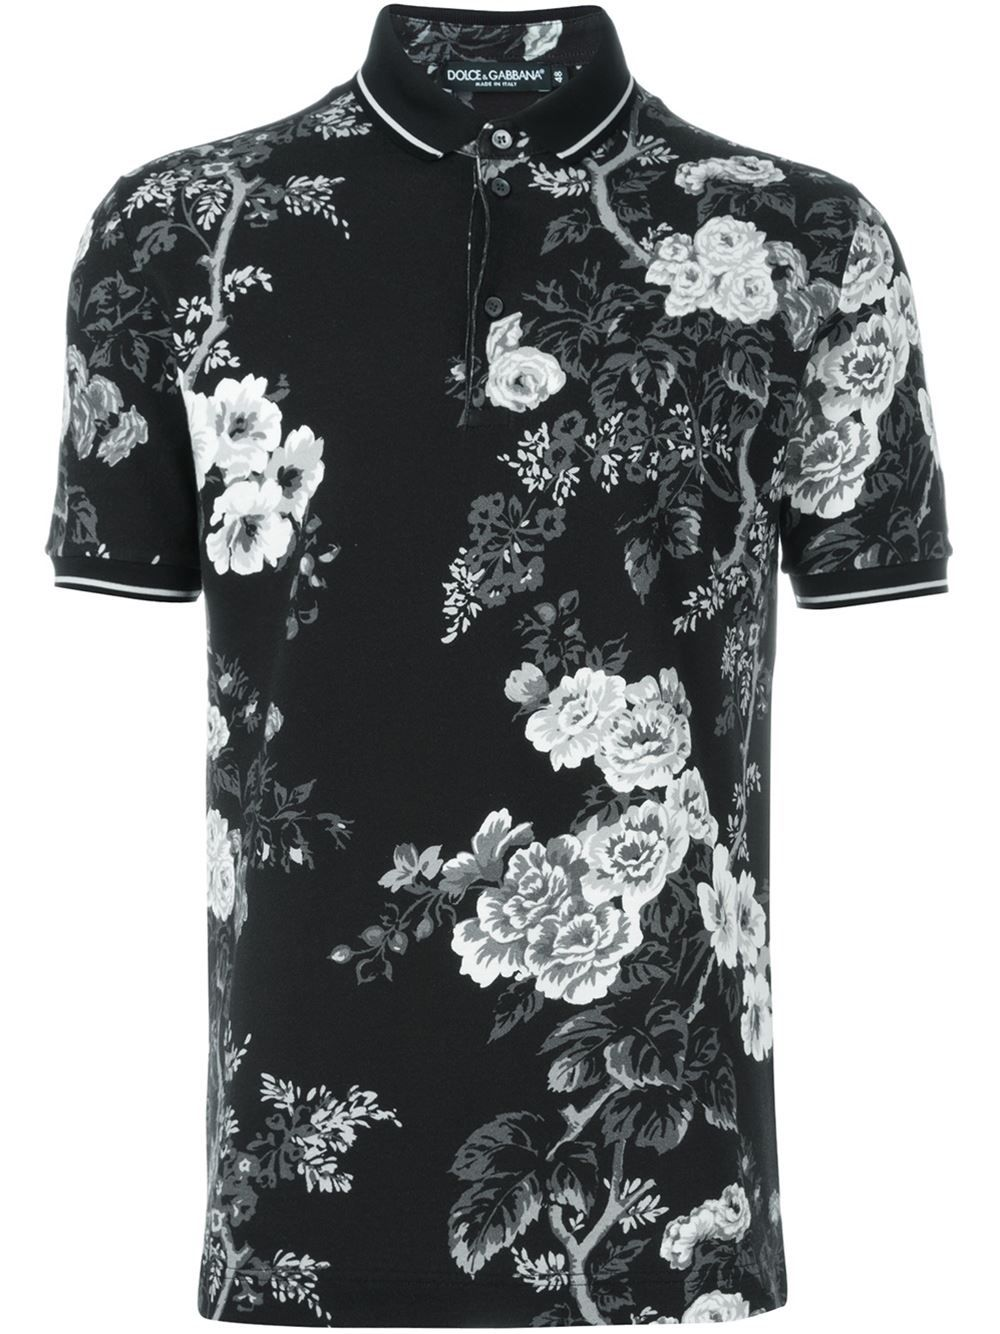 5dcad351d99 Dolce & Gabbana Floral Print Polo Shirt - Coso - Farfetch.com | t ...